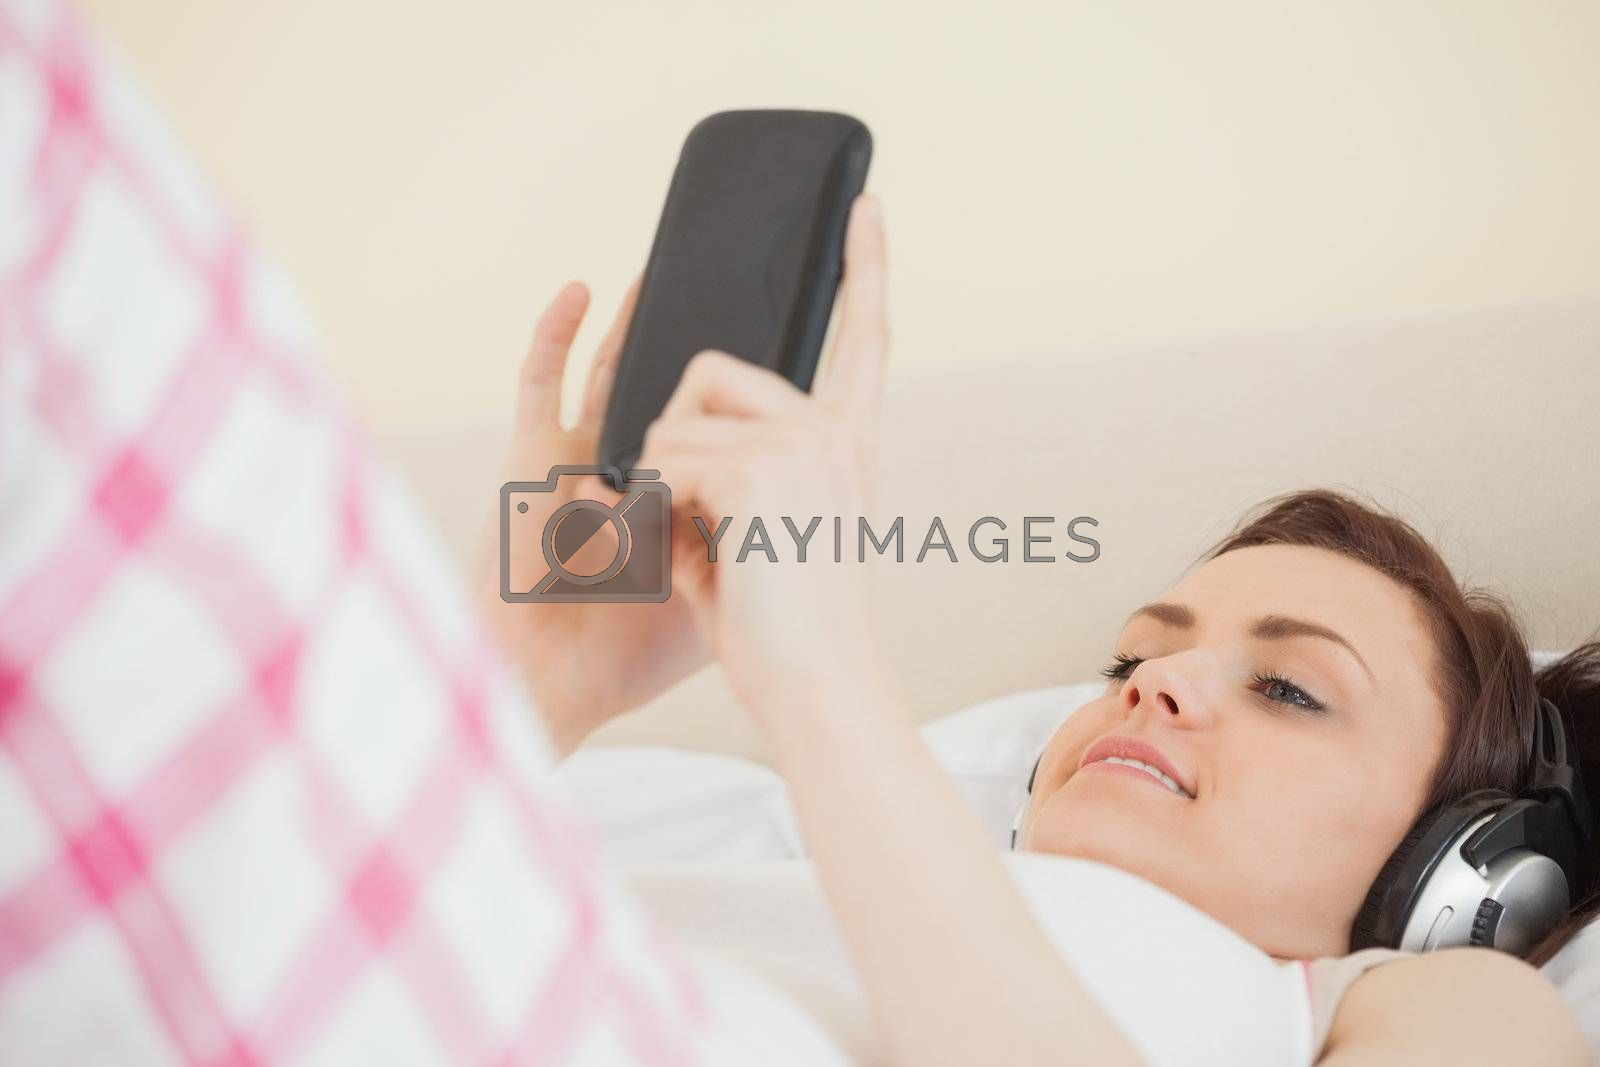 Smiling girl listening to music and using a mobile phone lying on a bed by Wavebreakmedia